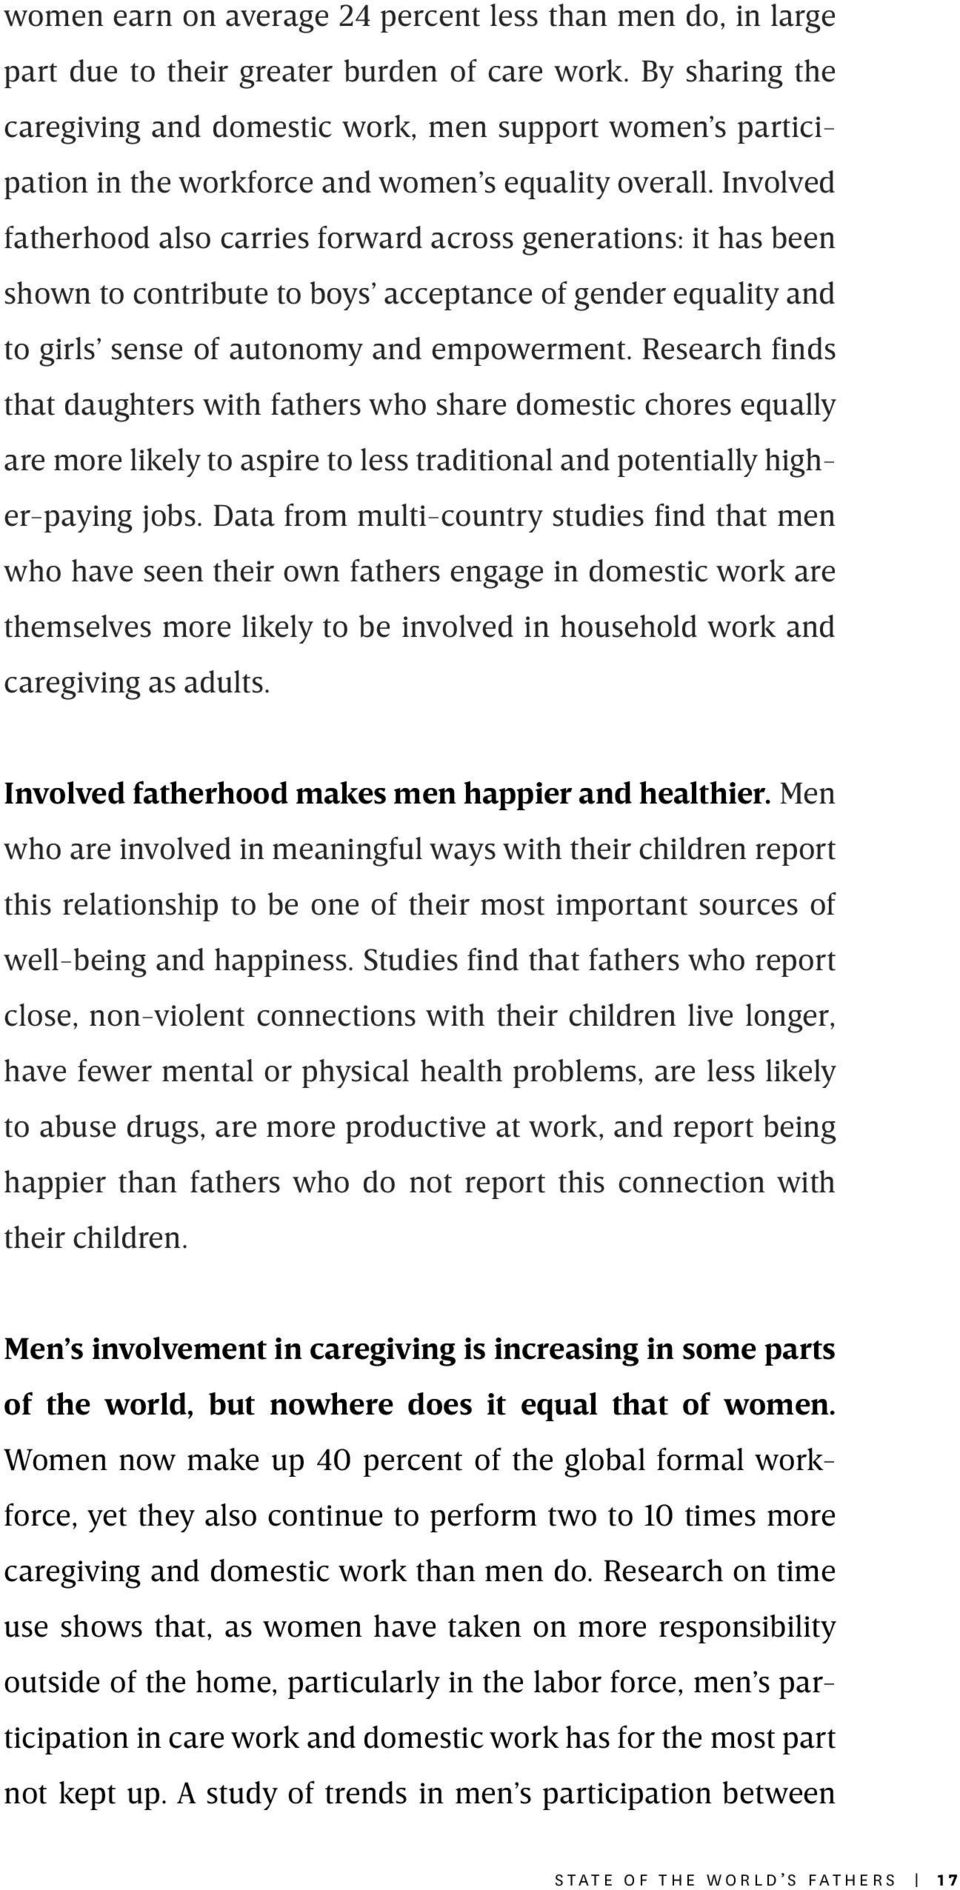 Involved fatherhood also carries forward across generations: it has been shown to contribute to boys acceptance of gender equality and to girls sense of autonomy and empowerment.